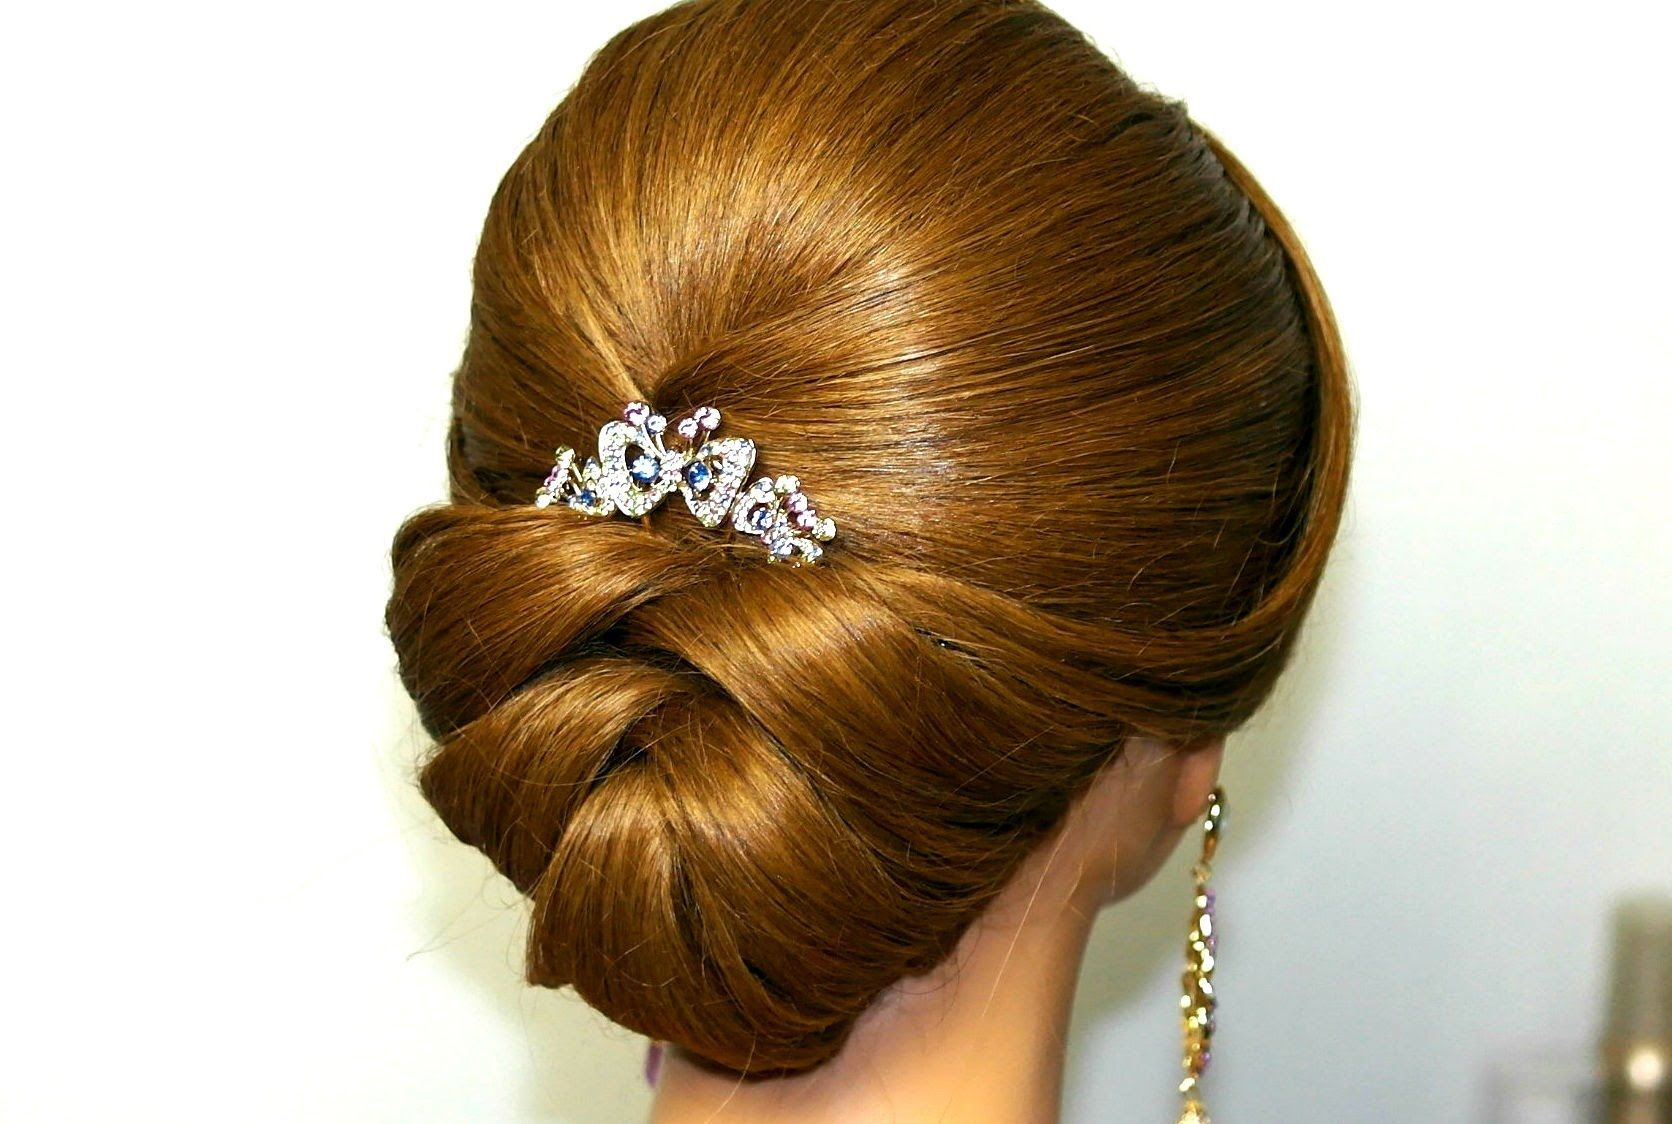 11 awesome updo wedding hairstyles for your big day